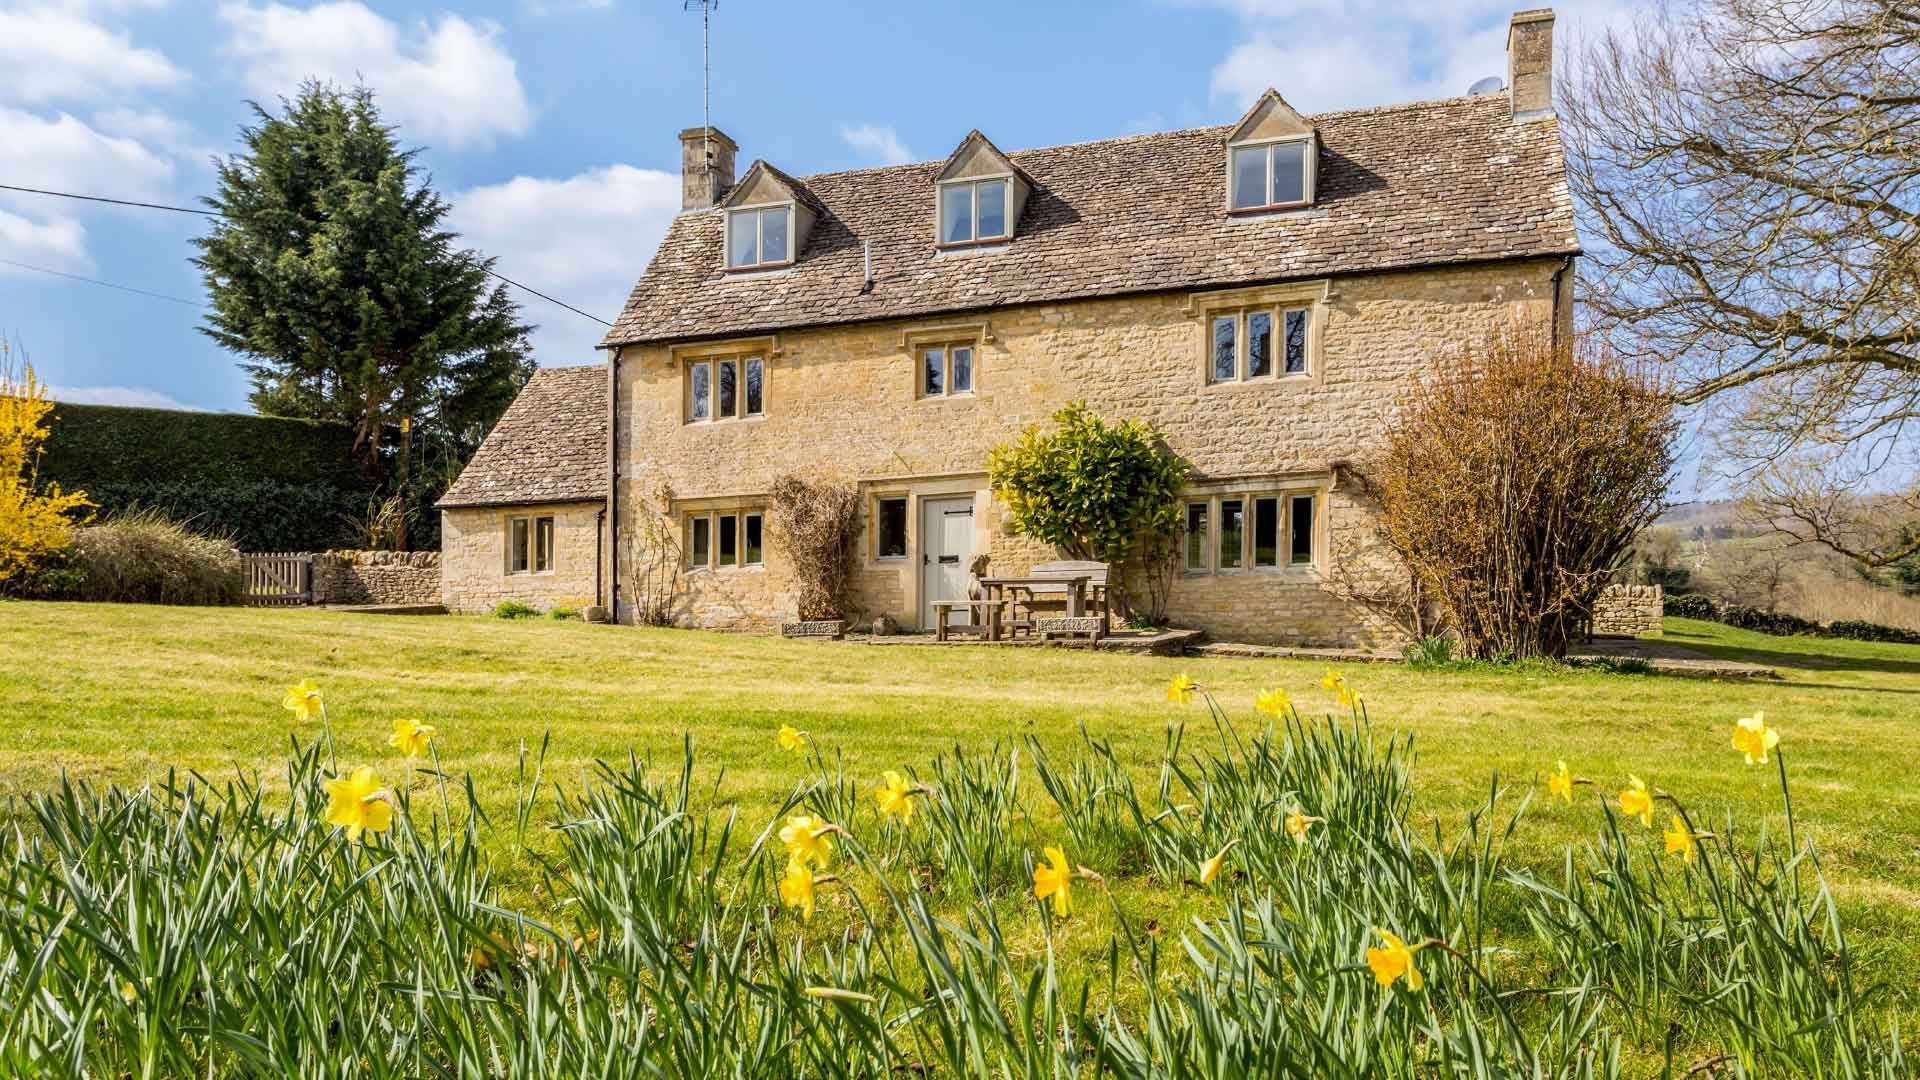 Elm Tree Cottage - StayCotswold